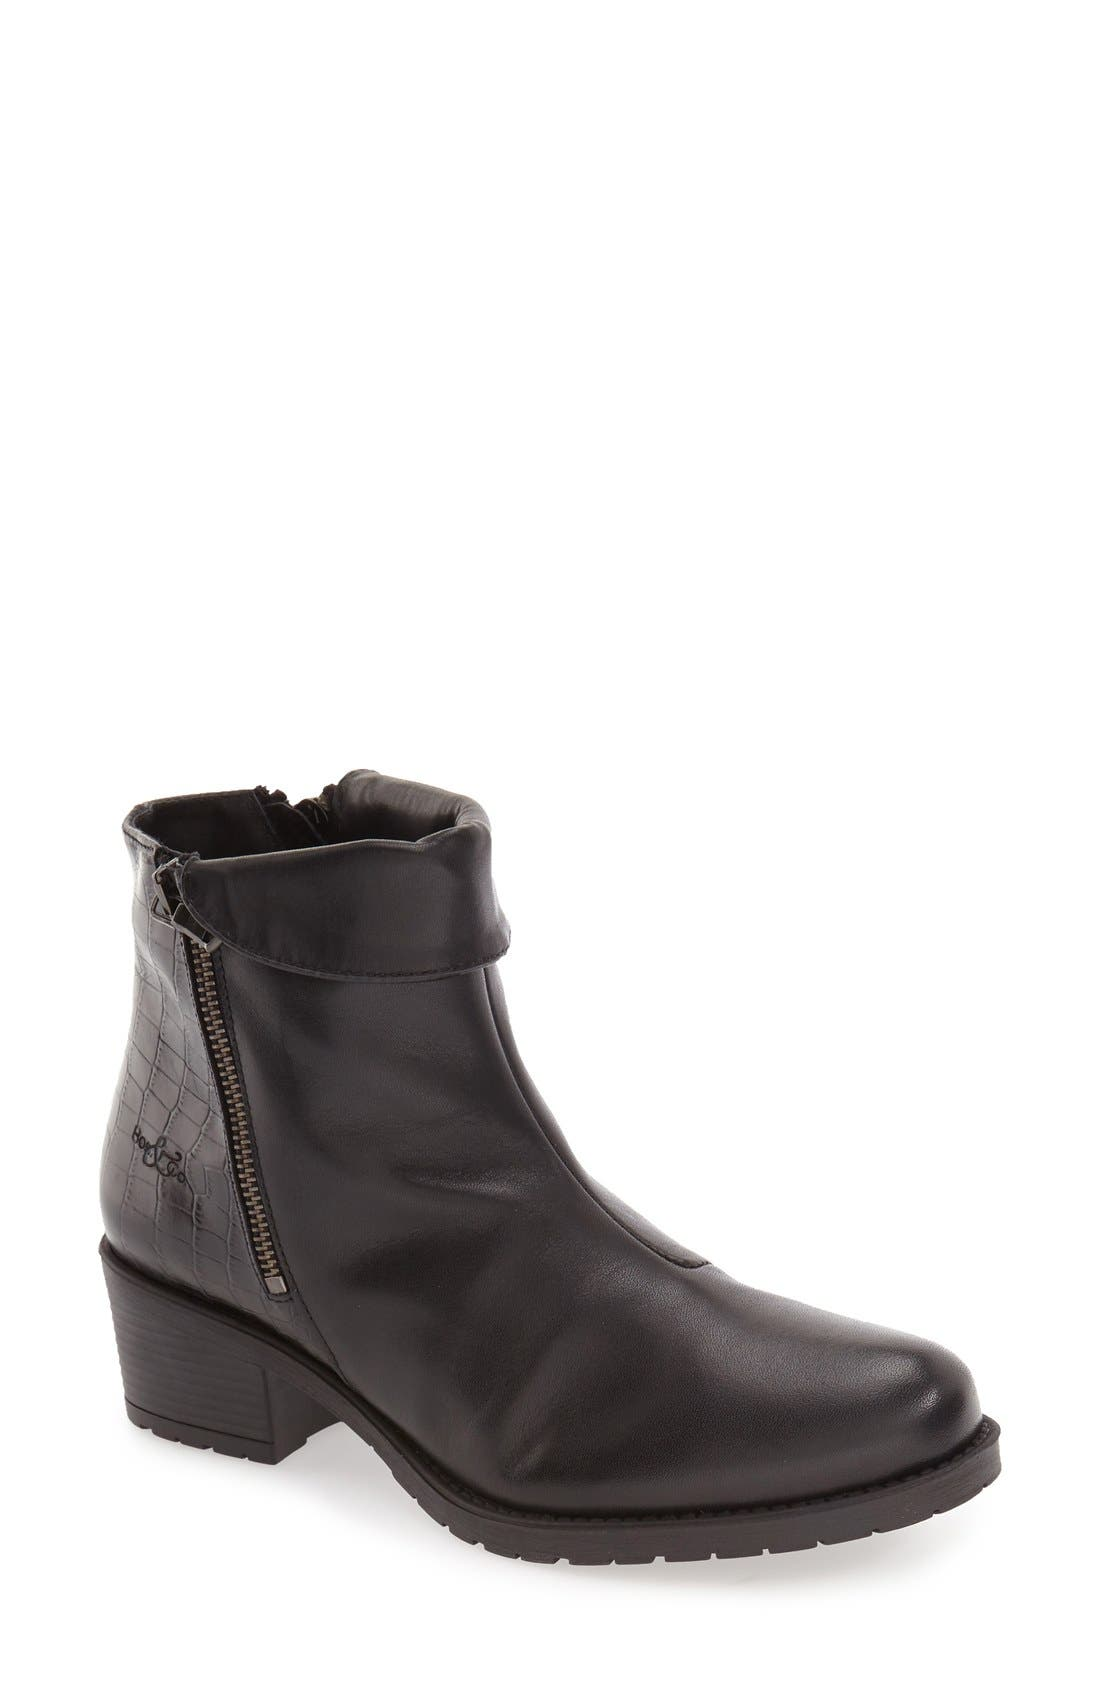 'Borano' Slouchy Waterproof Bootie,                         Main,                         color, BLACK CRINKLE PATENT LEATHER